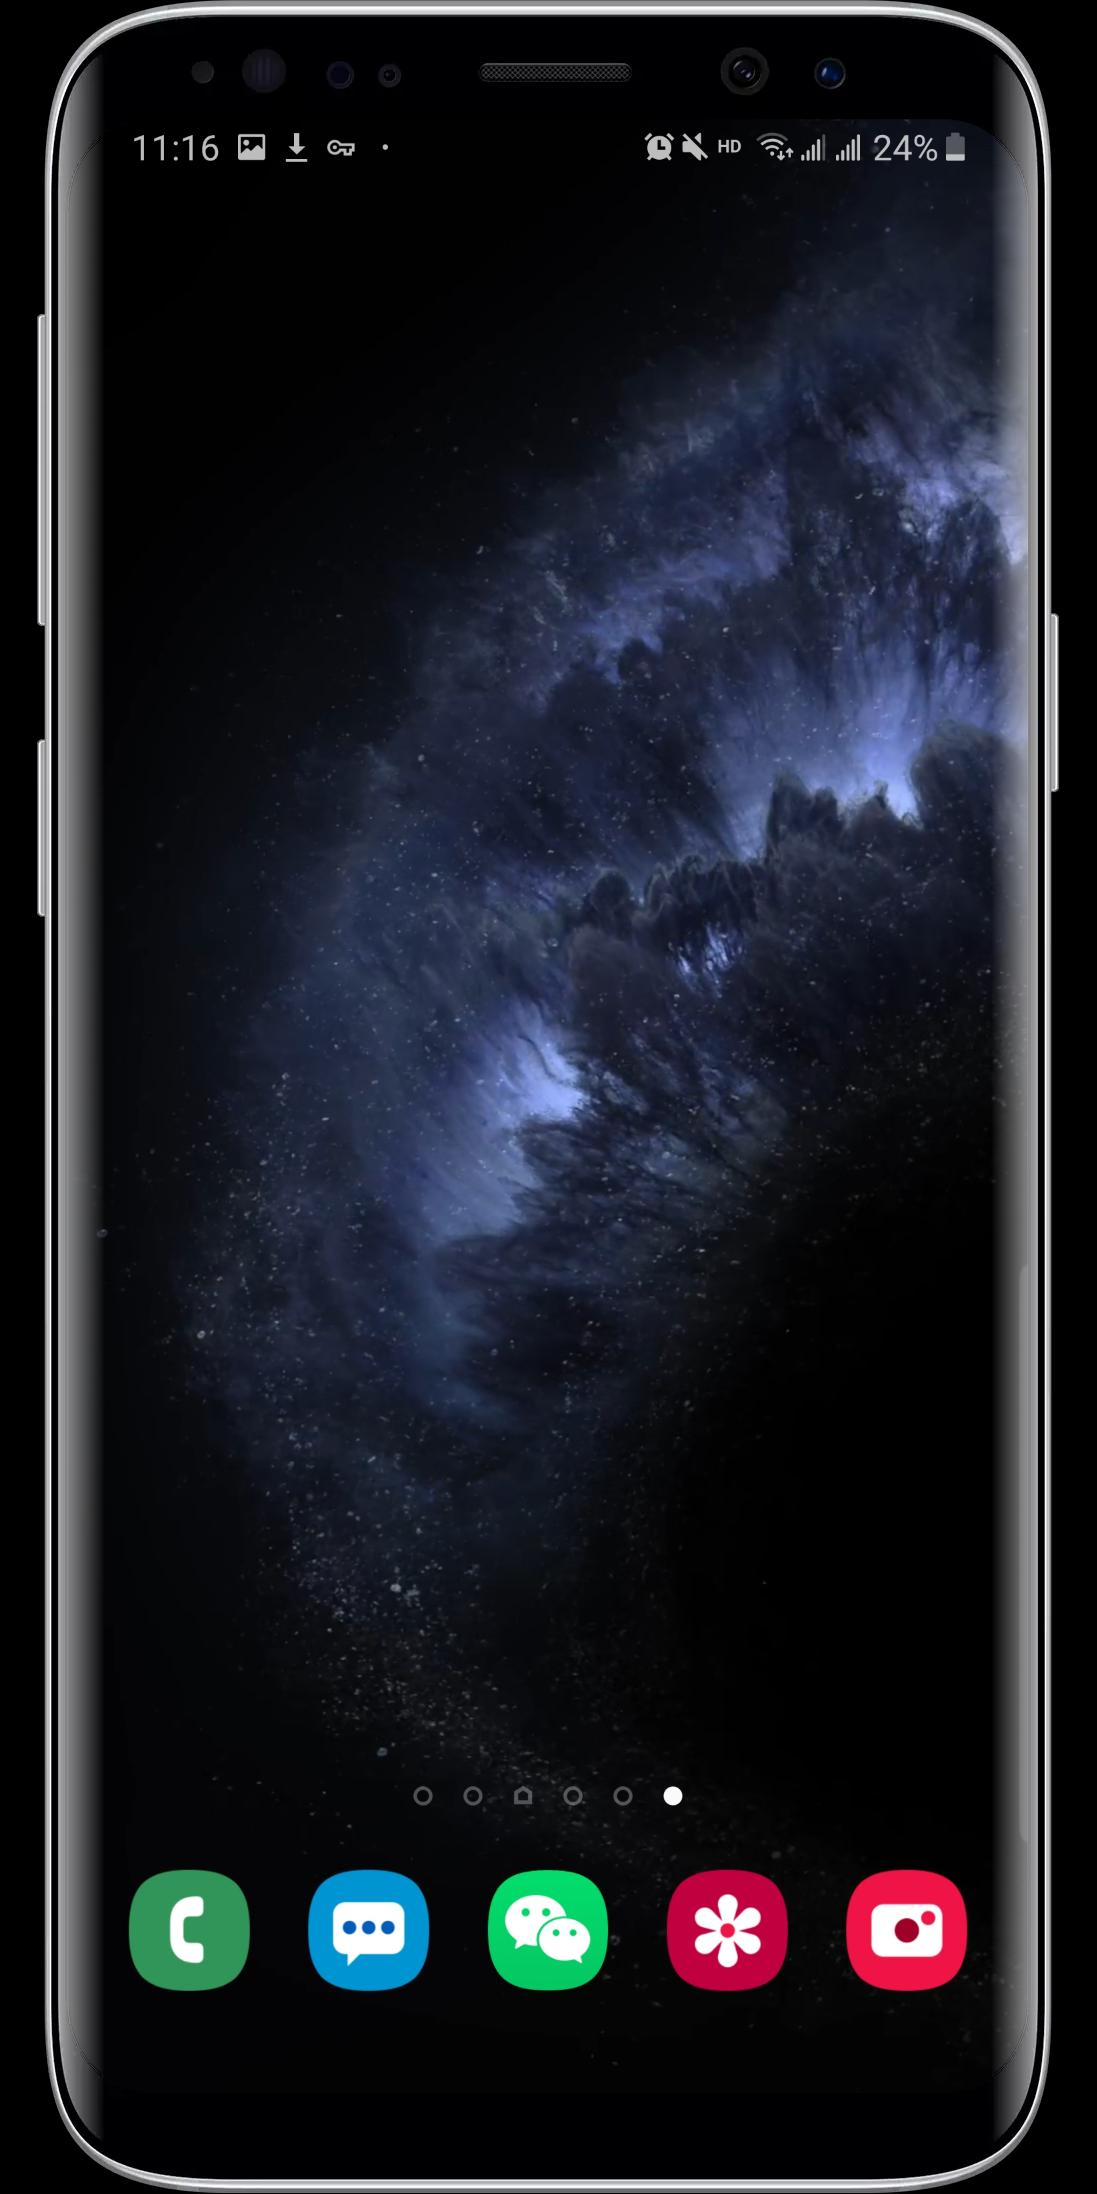 Phone 11 Pro Live Wallpaper Free Full Hd For Android Apk